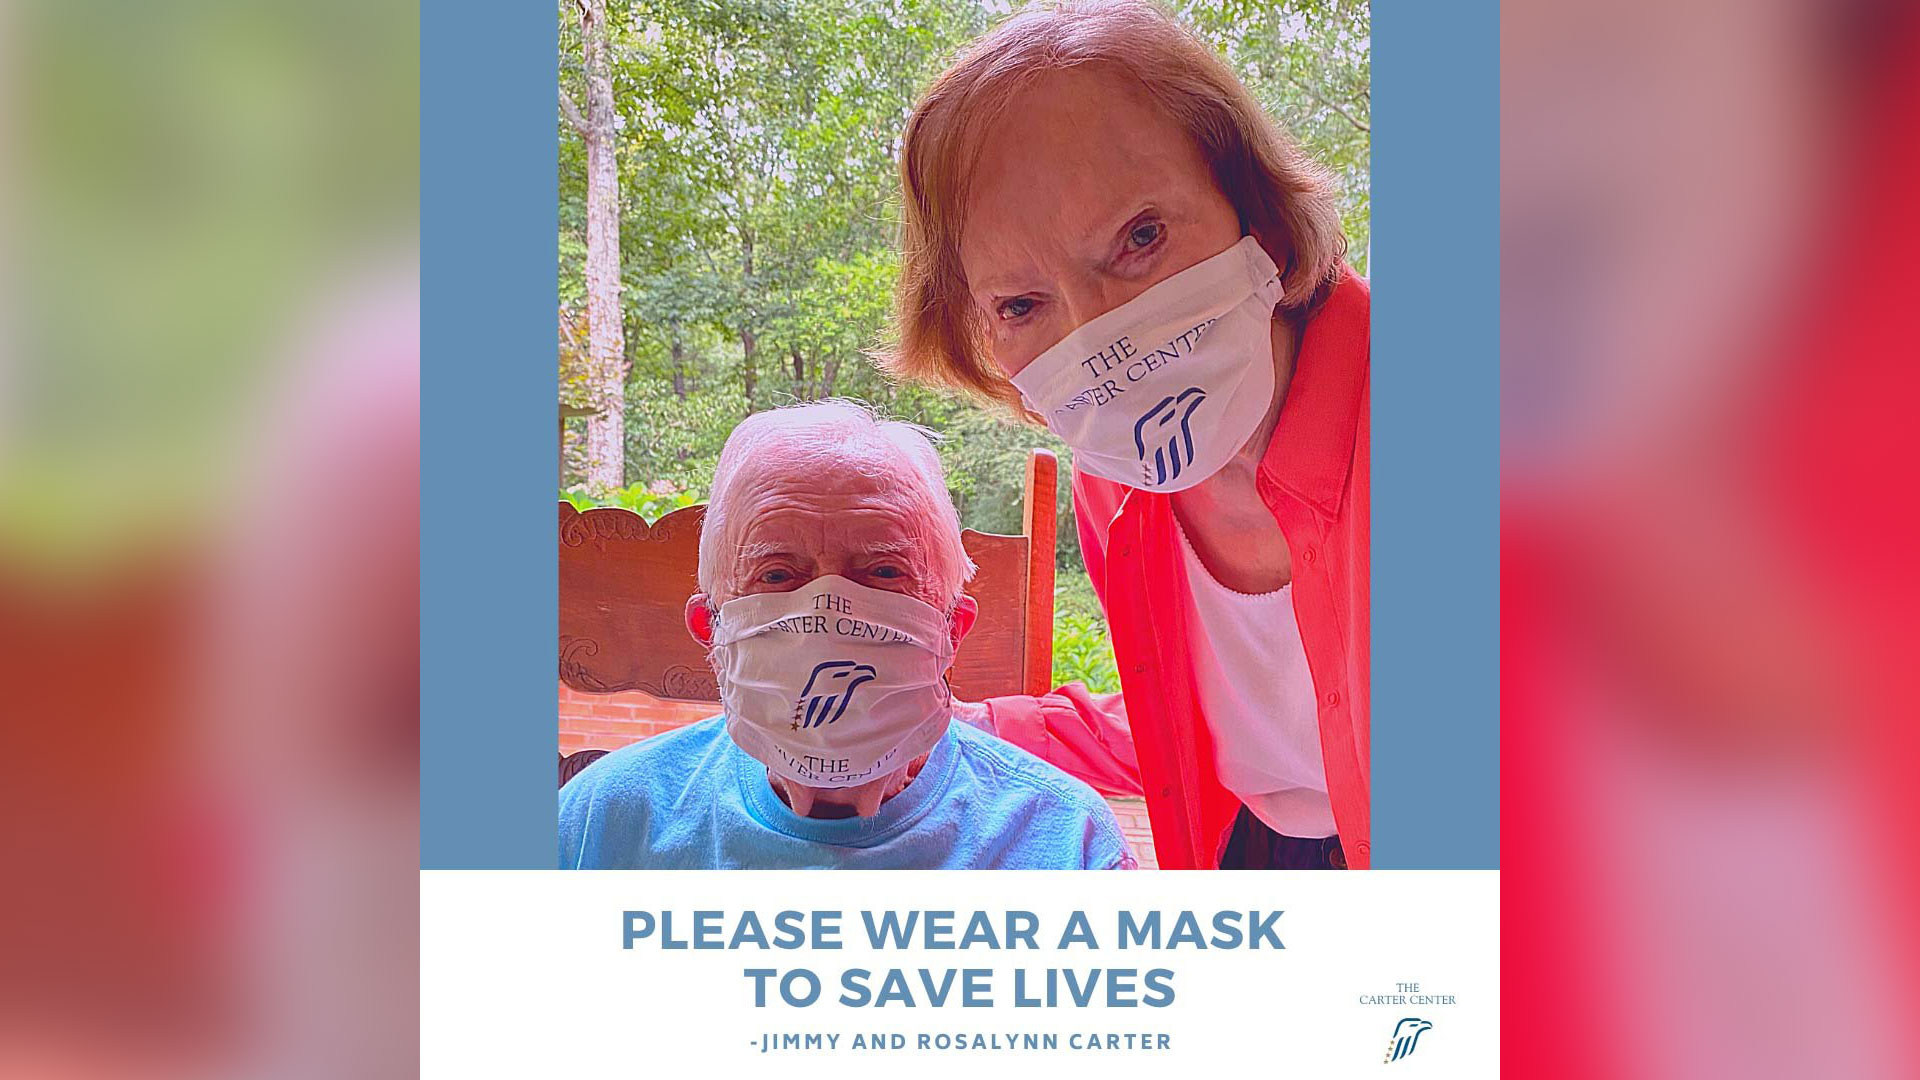 Jimmy and Rosalynn Carter pose in face masks and call on the public to save lives